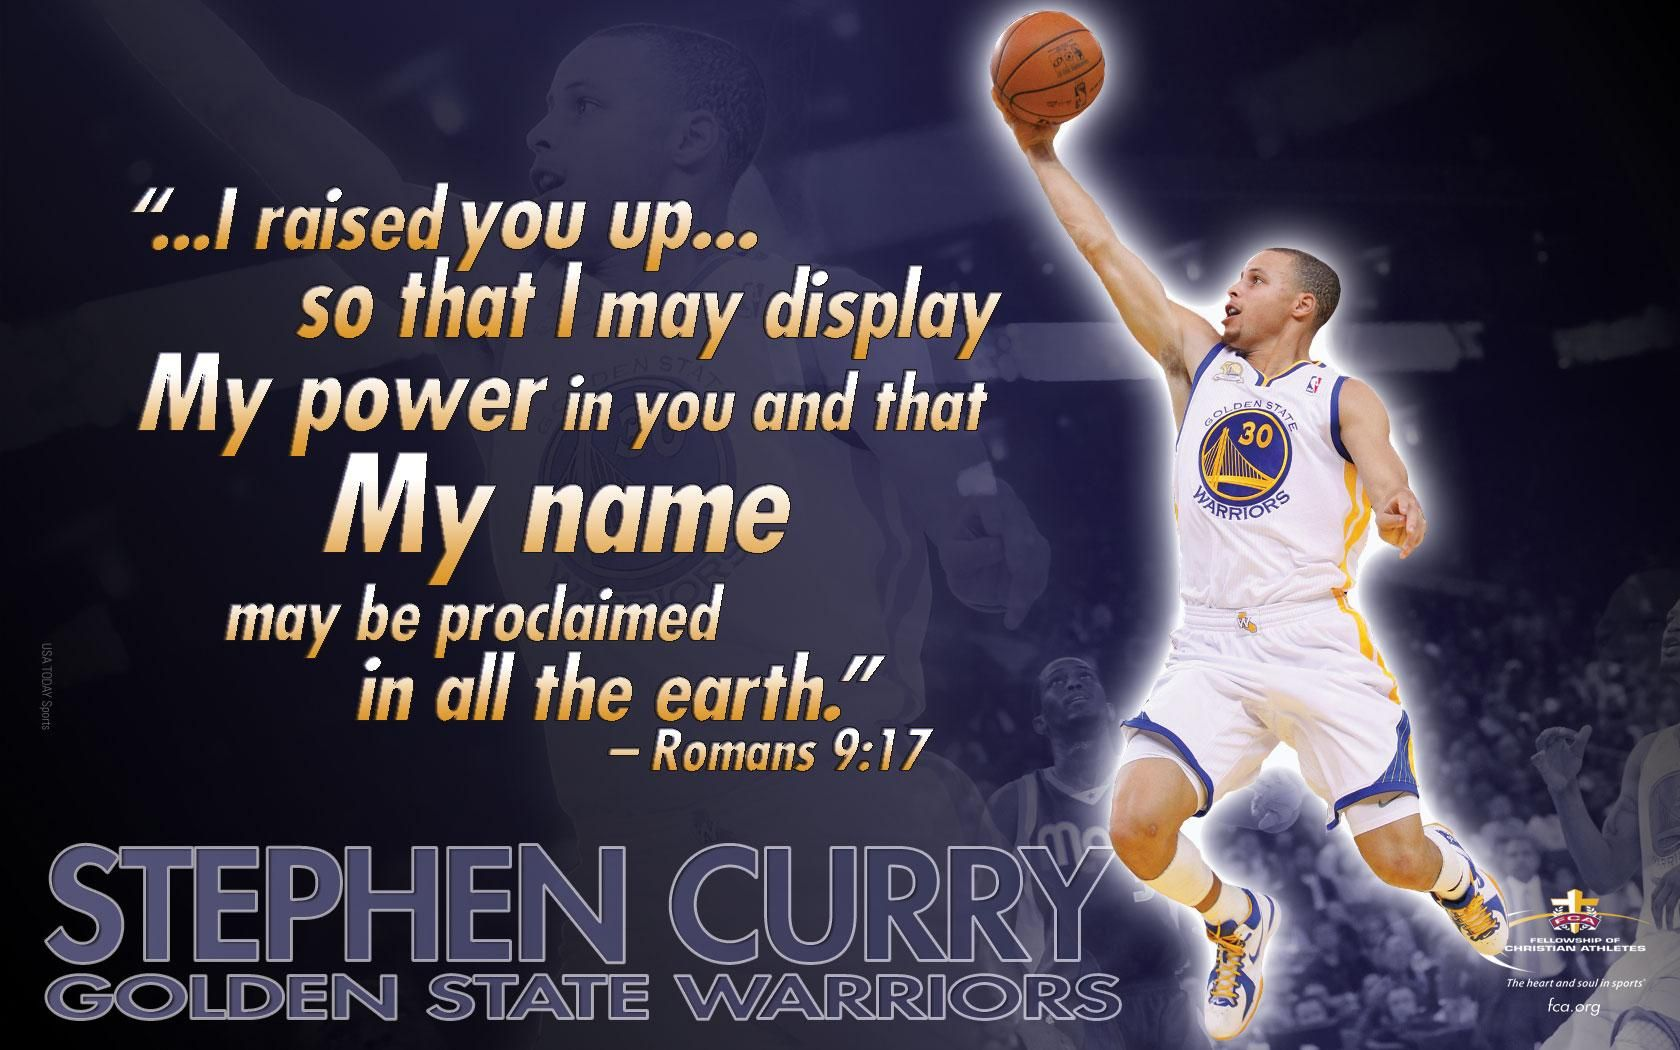 Stephen Curry Quotes Wallpaper Stephen curry, Basketball